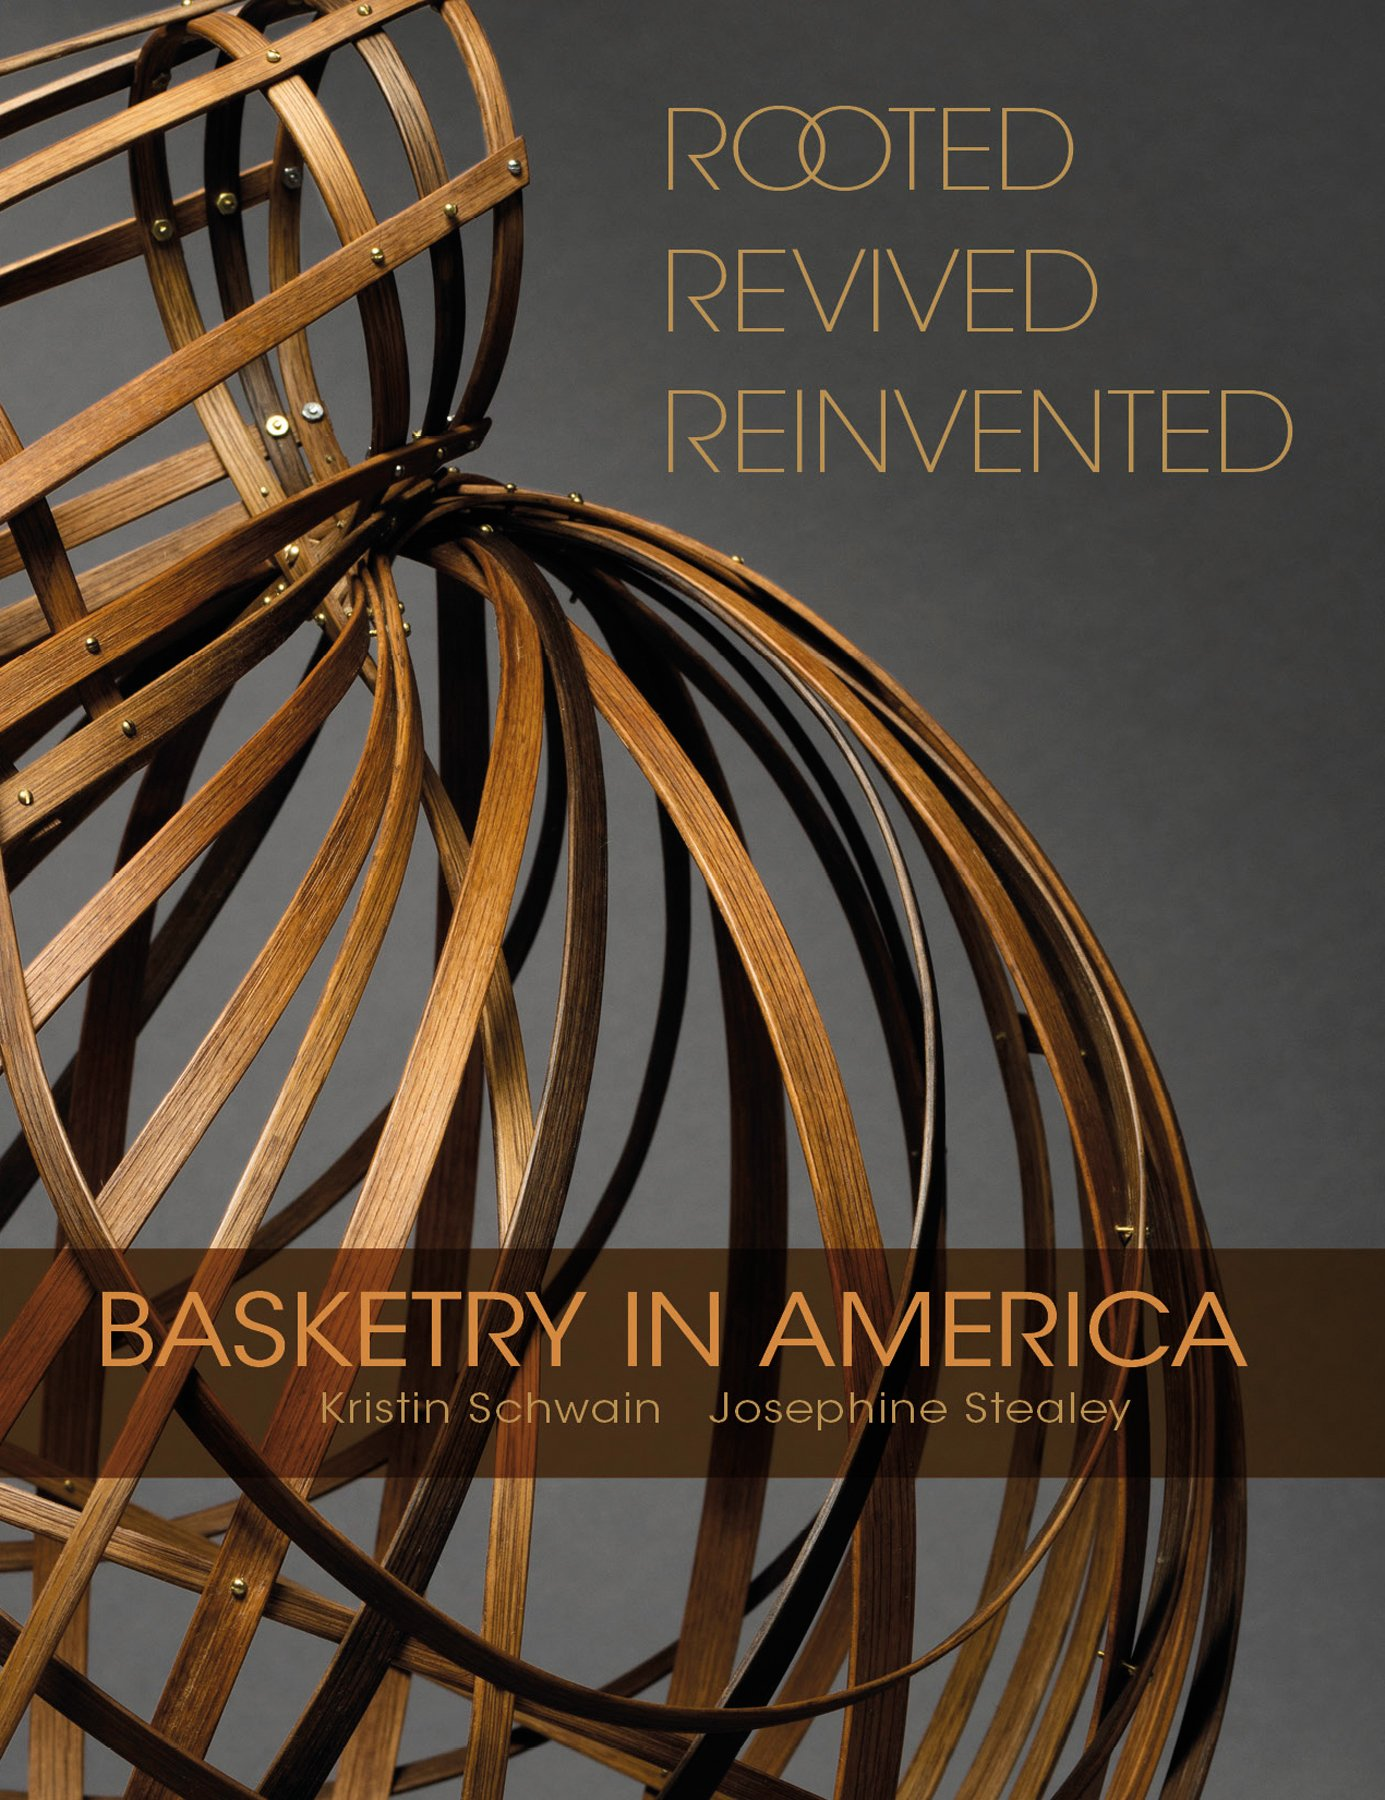 Rooted, Revived, Reinvented: Basketry in America